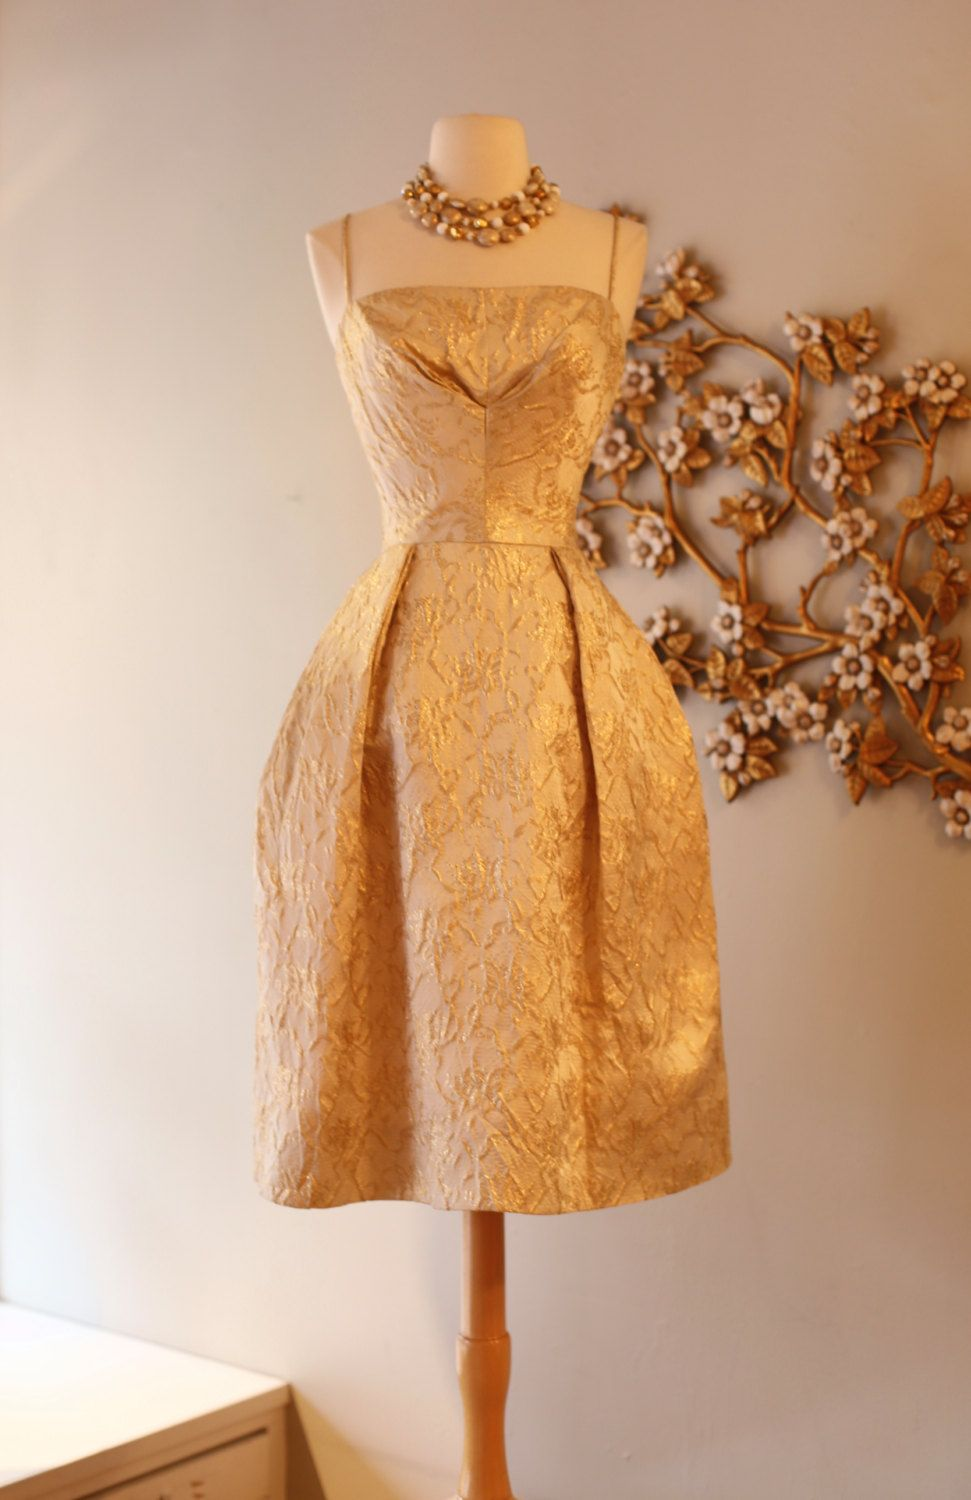 Vintage 1960s Will Steinman Gold Party Dress Vintage 60s Etsy Gold Party Dress Vintage Dresses Vintage Clothing Boutique [ 1500 x 971 Pixel ]